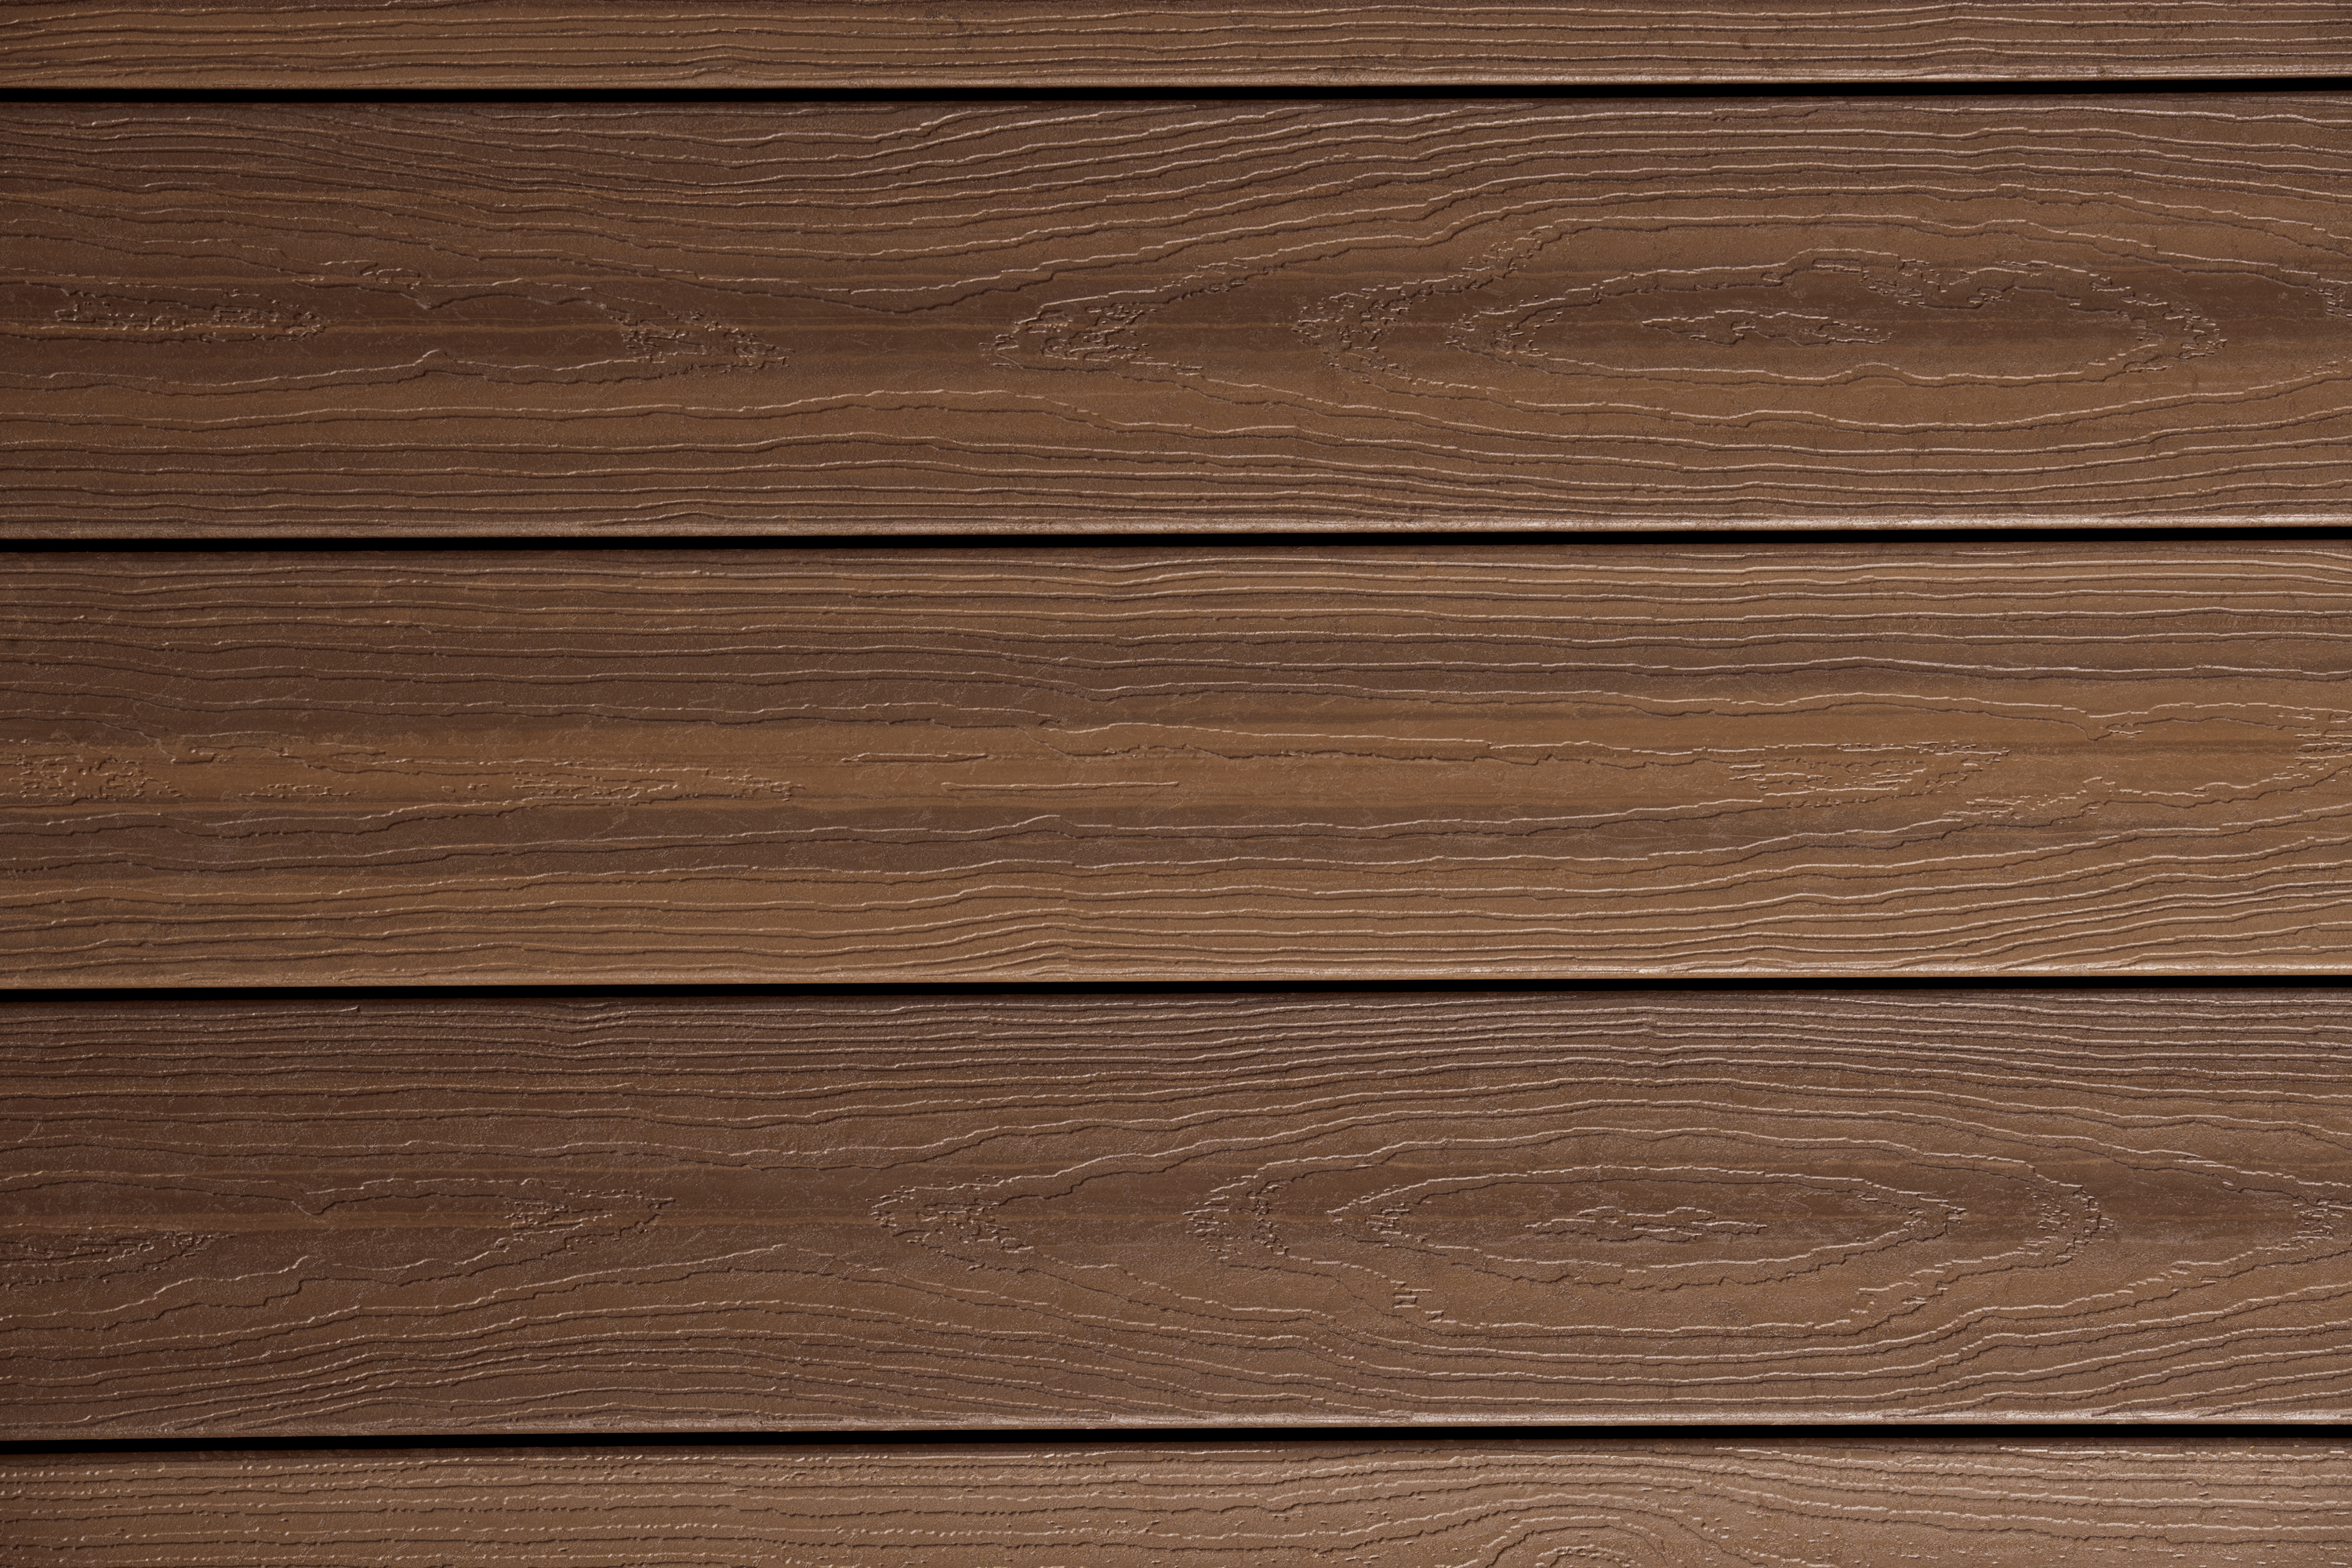 sienna evergrain decking for deck inspiration